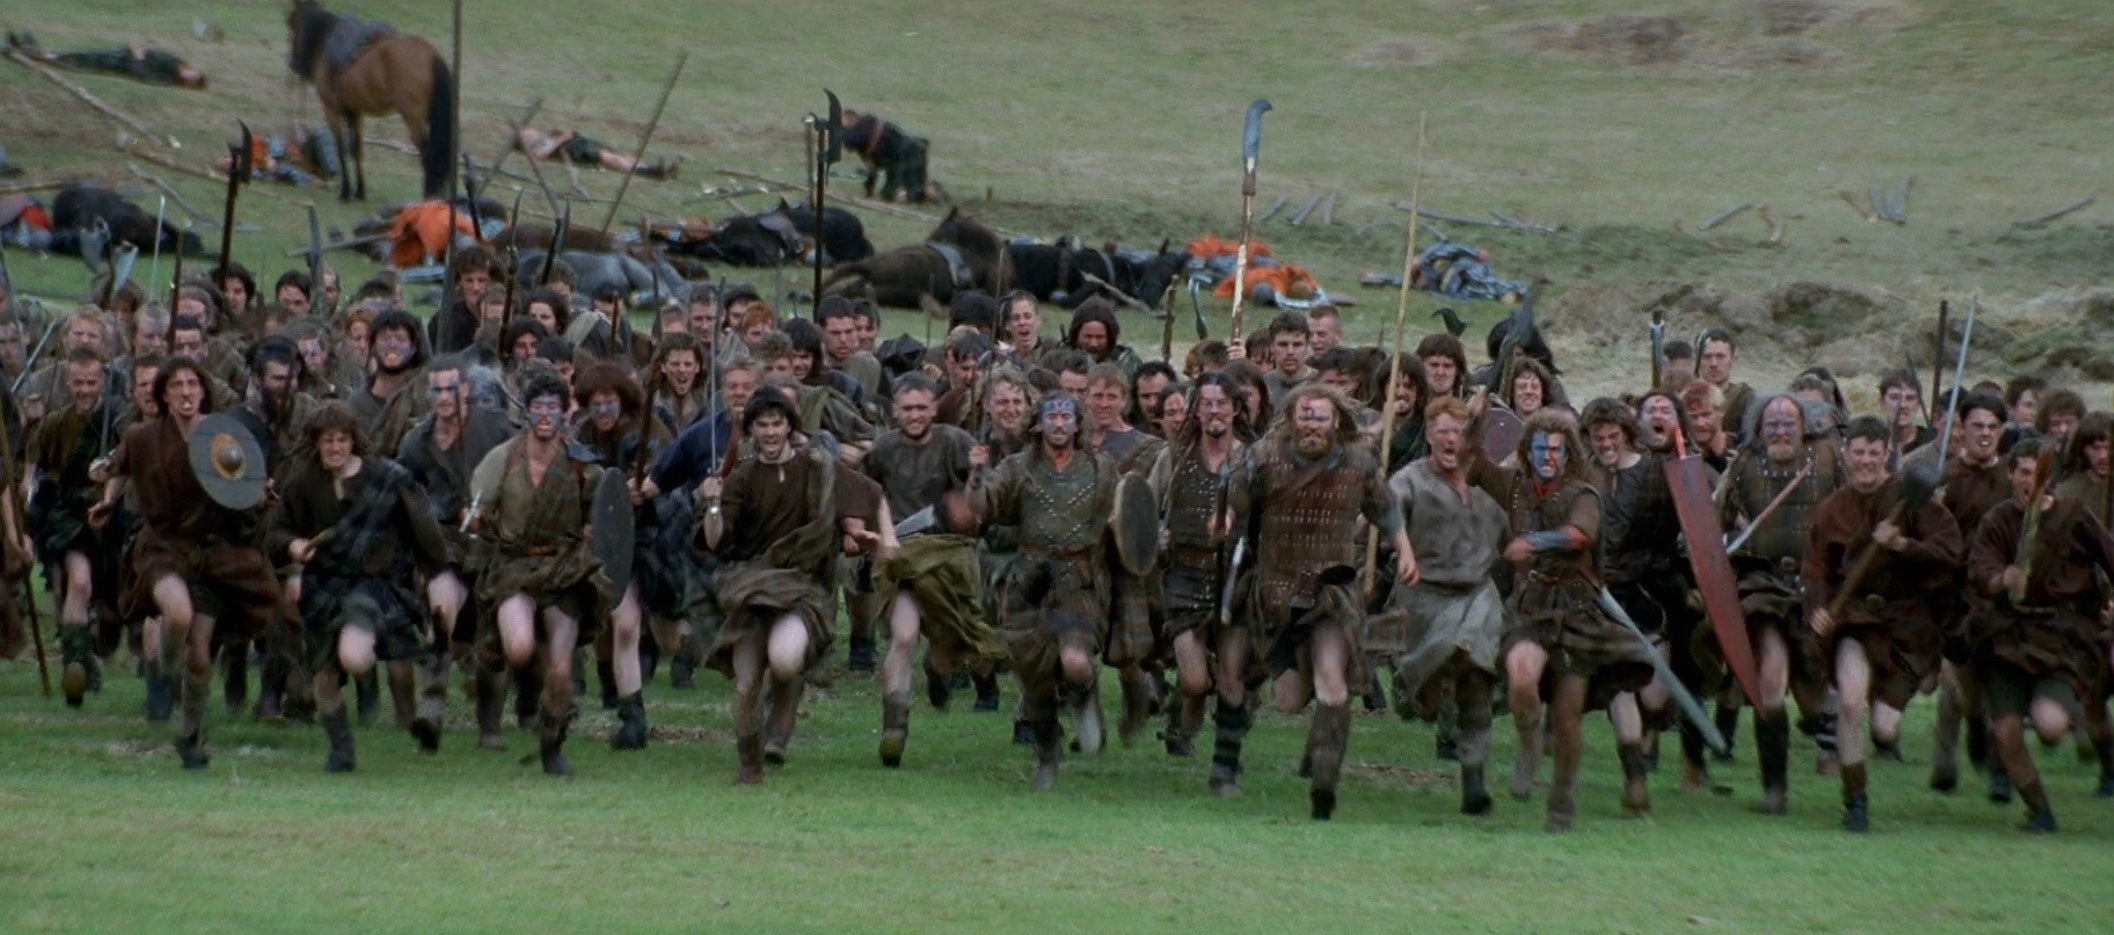 Braveheart (1995) - A Stunt Mattock used in the Film